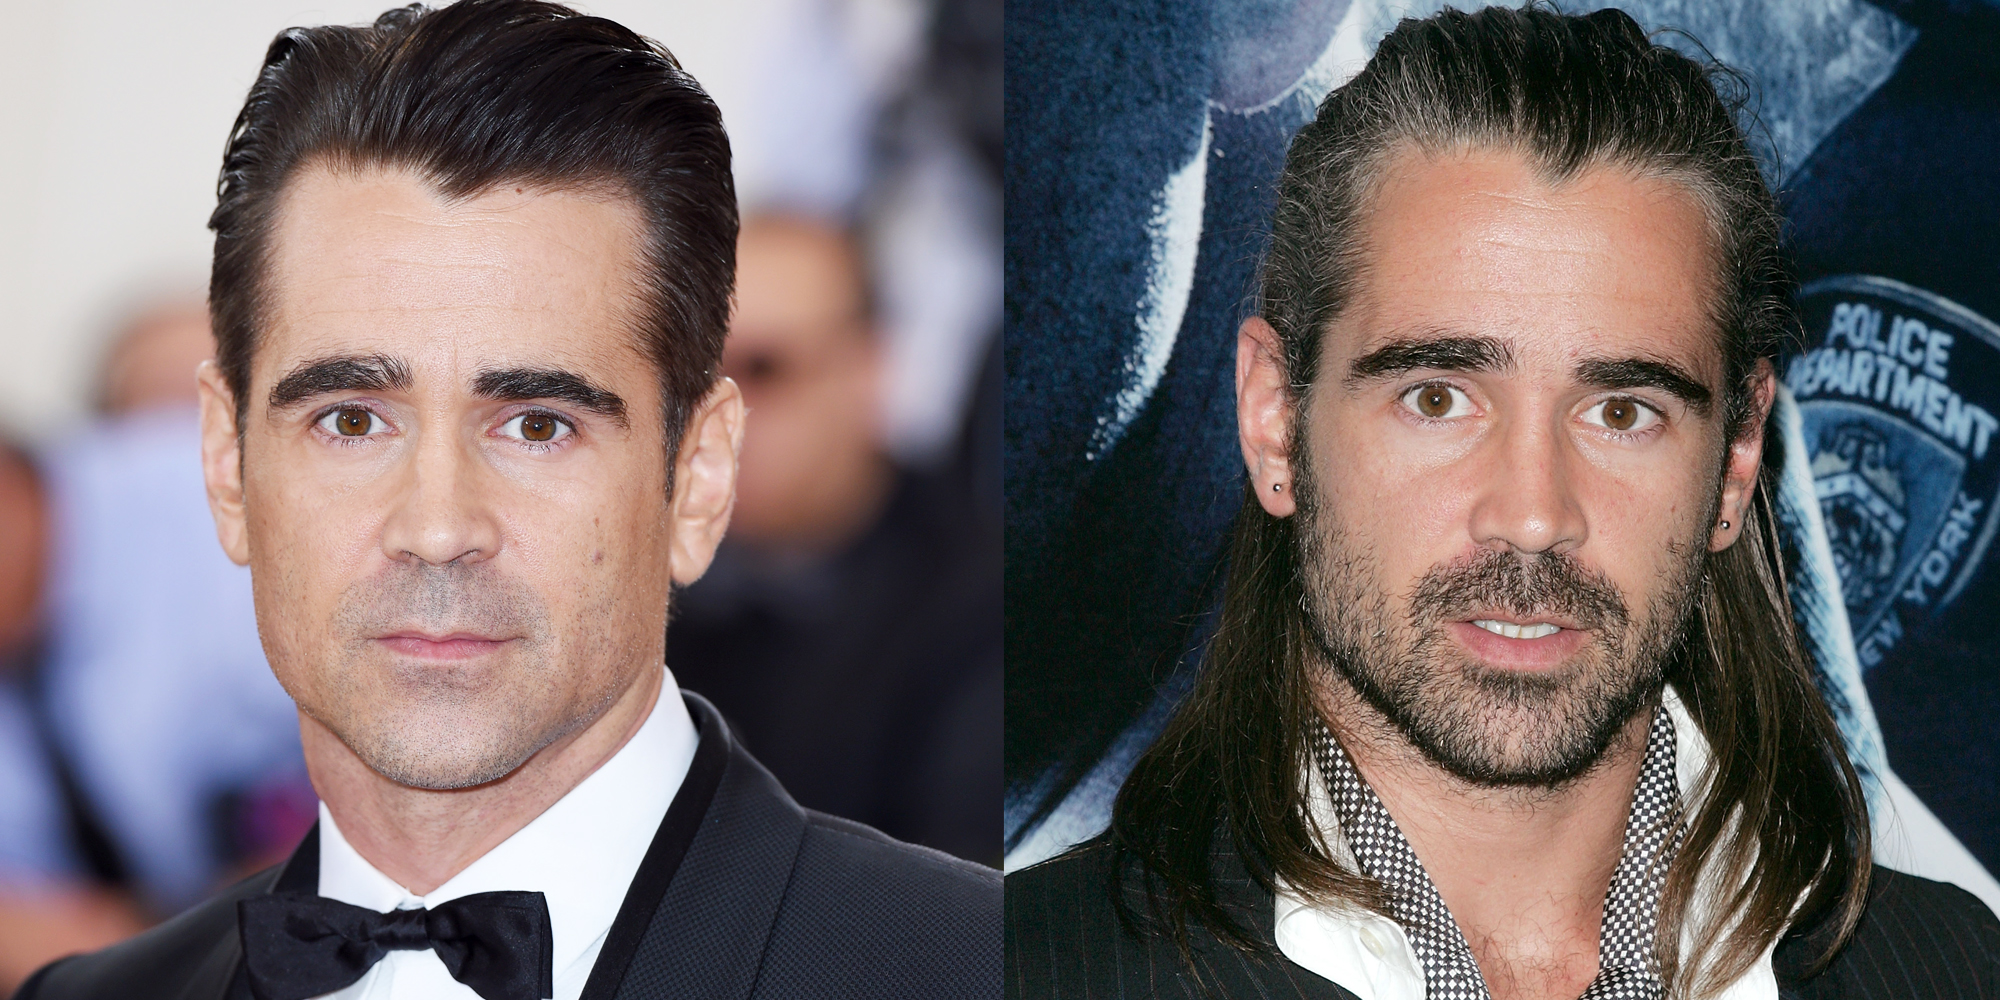 17 Hot Celebrities With Beards - Best Before And After Celebrity